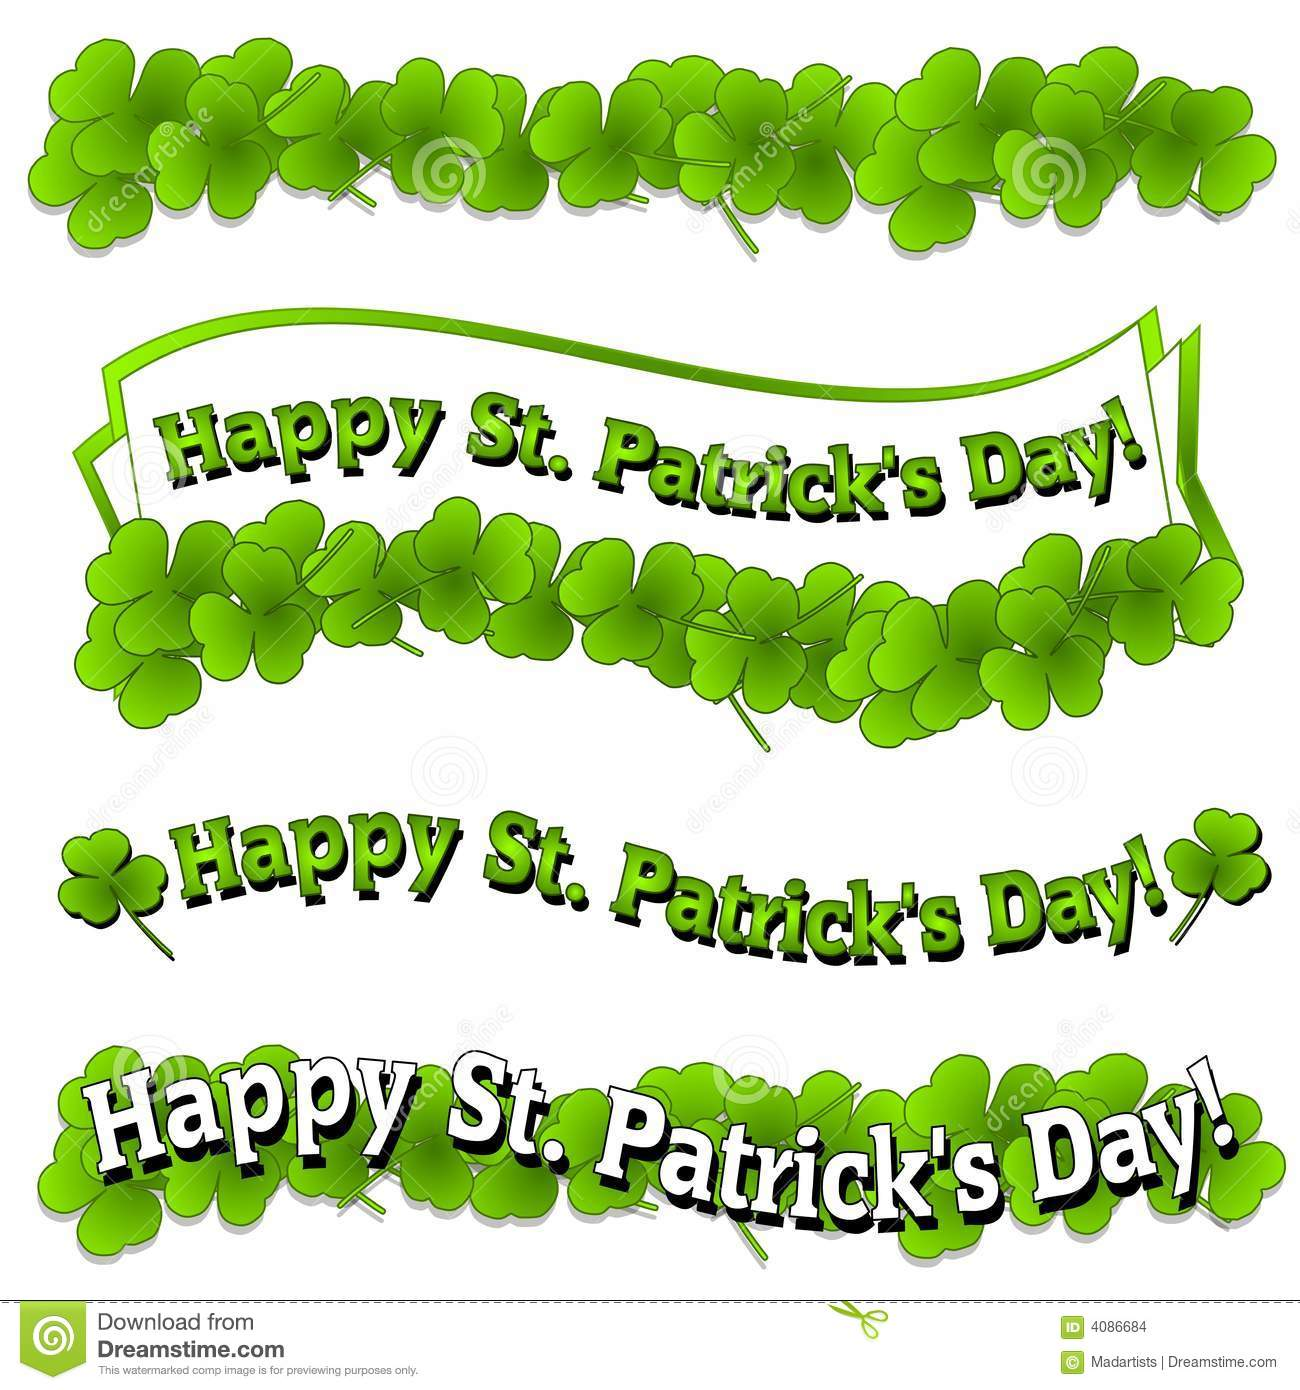 37324daf A clip art illustration featuring an assortment of St. Patrick's Day Logos  and Banners with bright green clovers